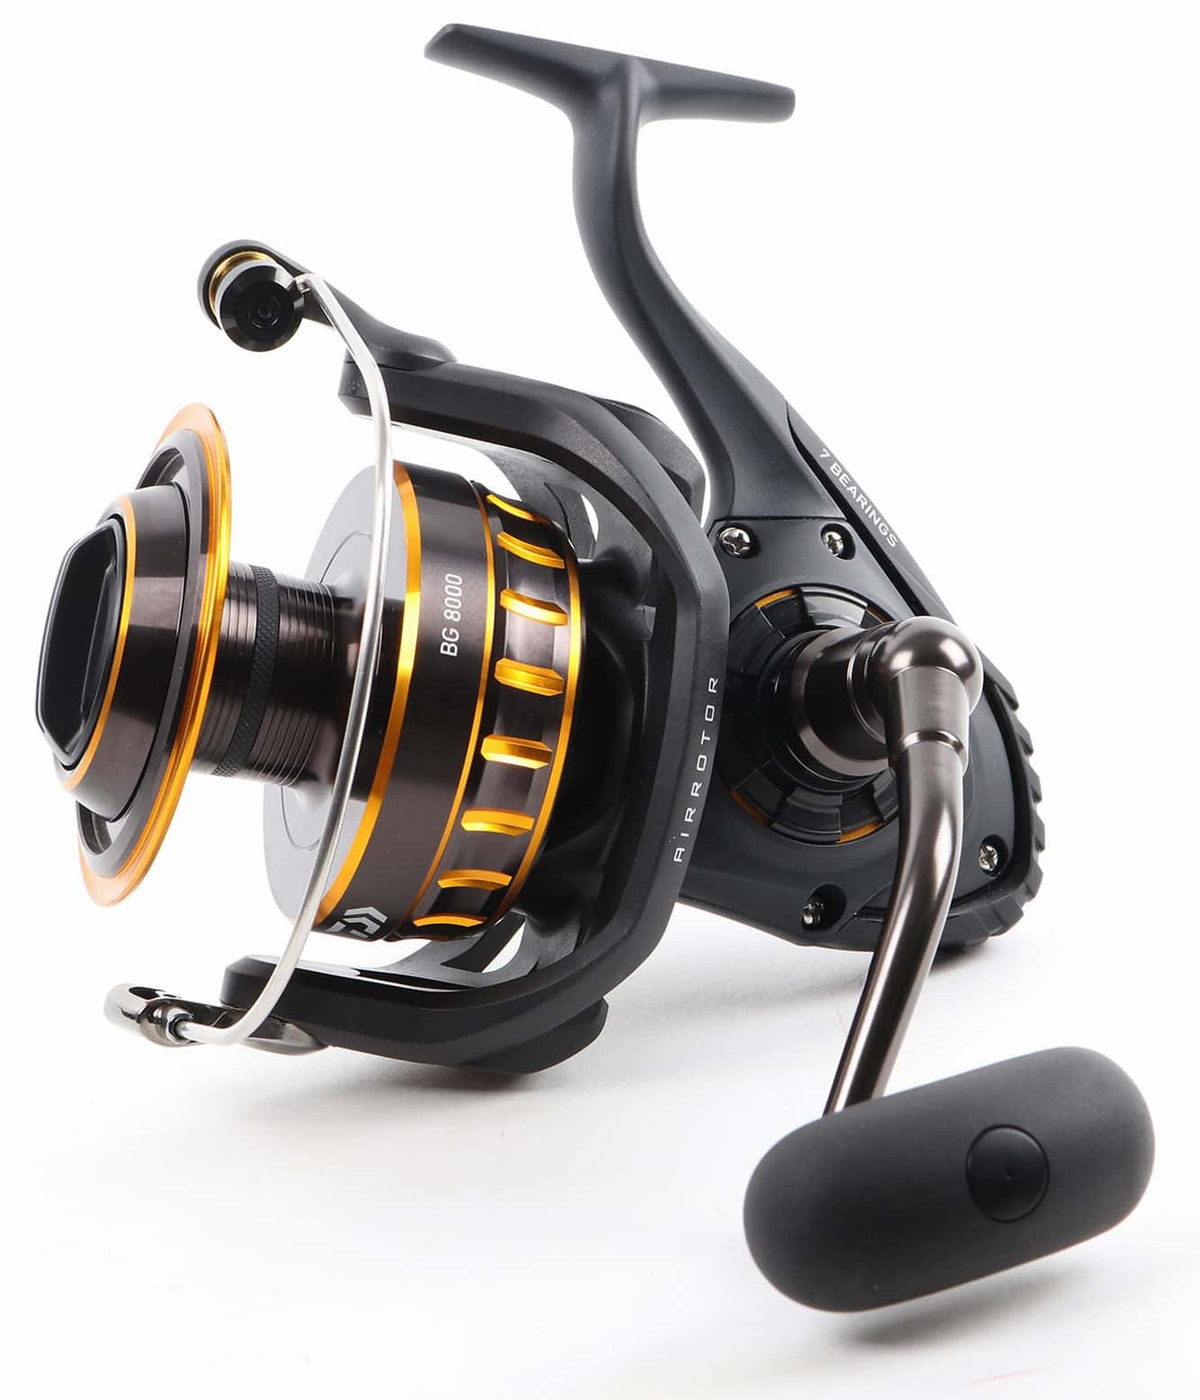 e574bb1940c Daiwa BG4000 BG Saltwater Spinning Reel | TackleDirect